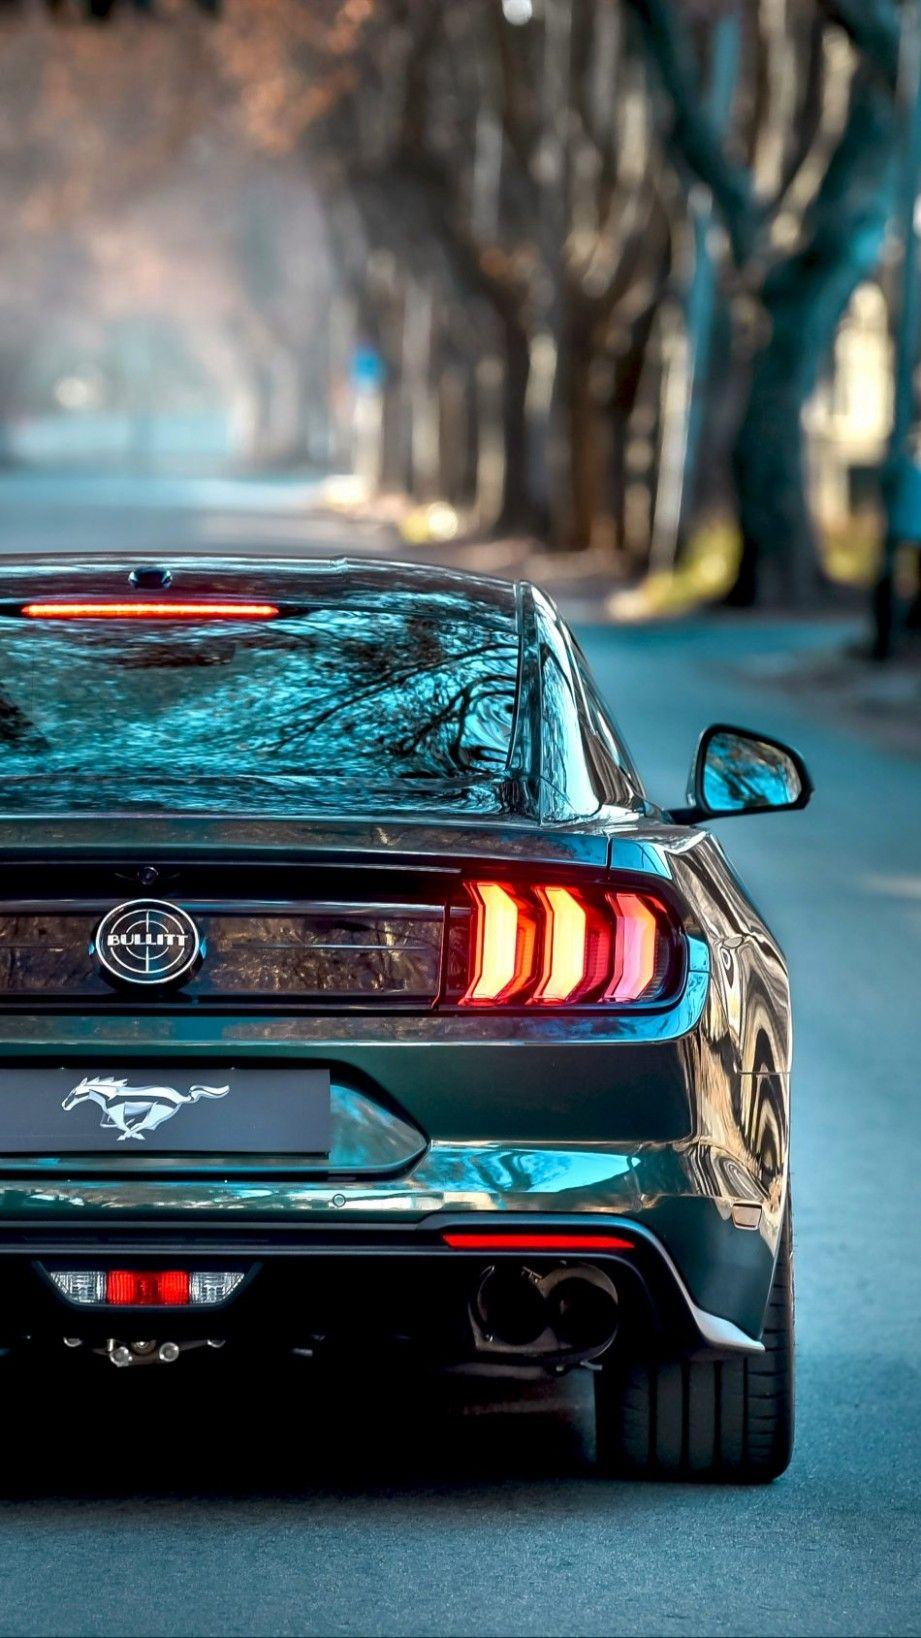 Why Is Ford Mustang Wallpaper Considered Underrated?